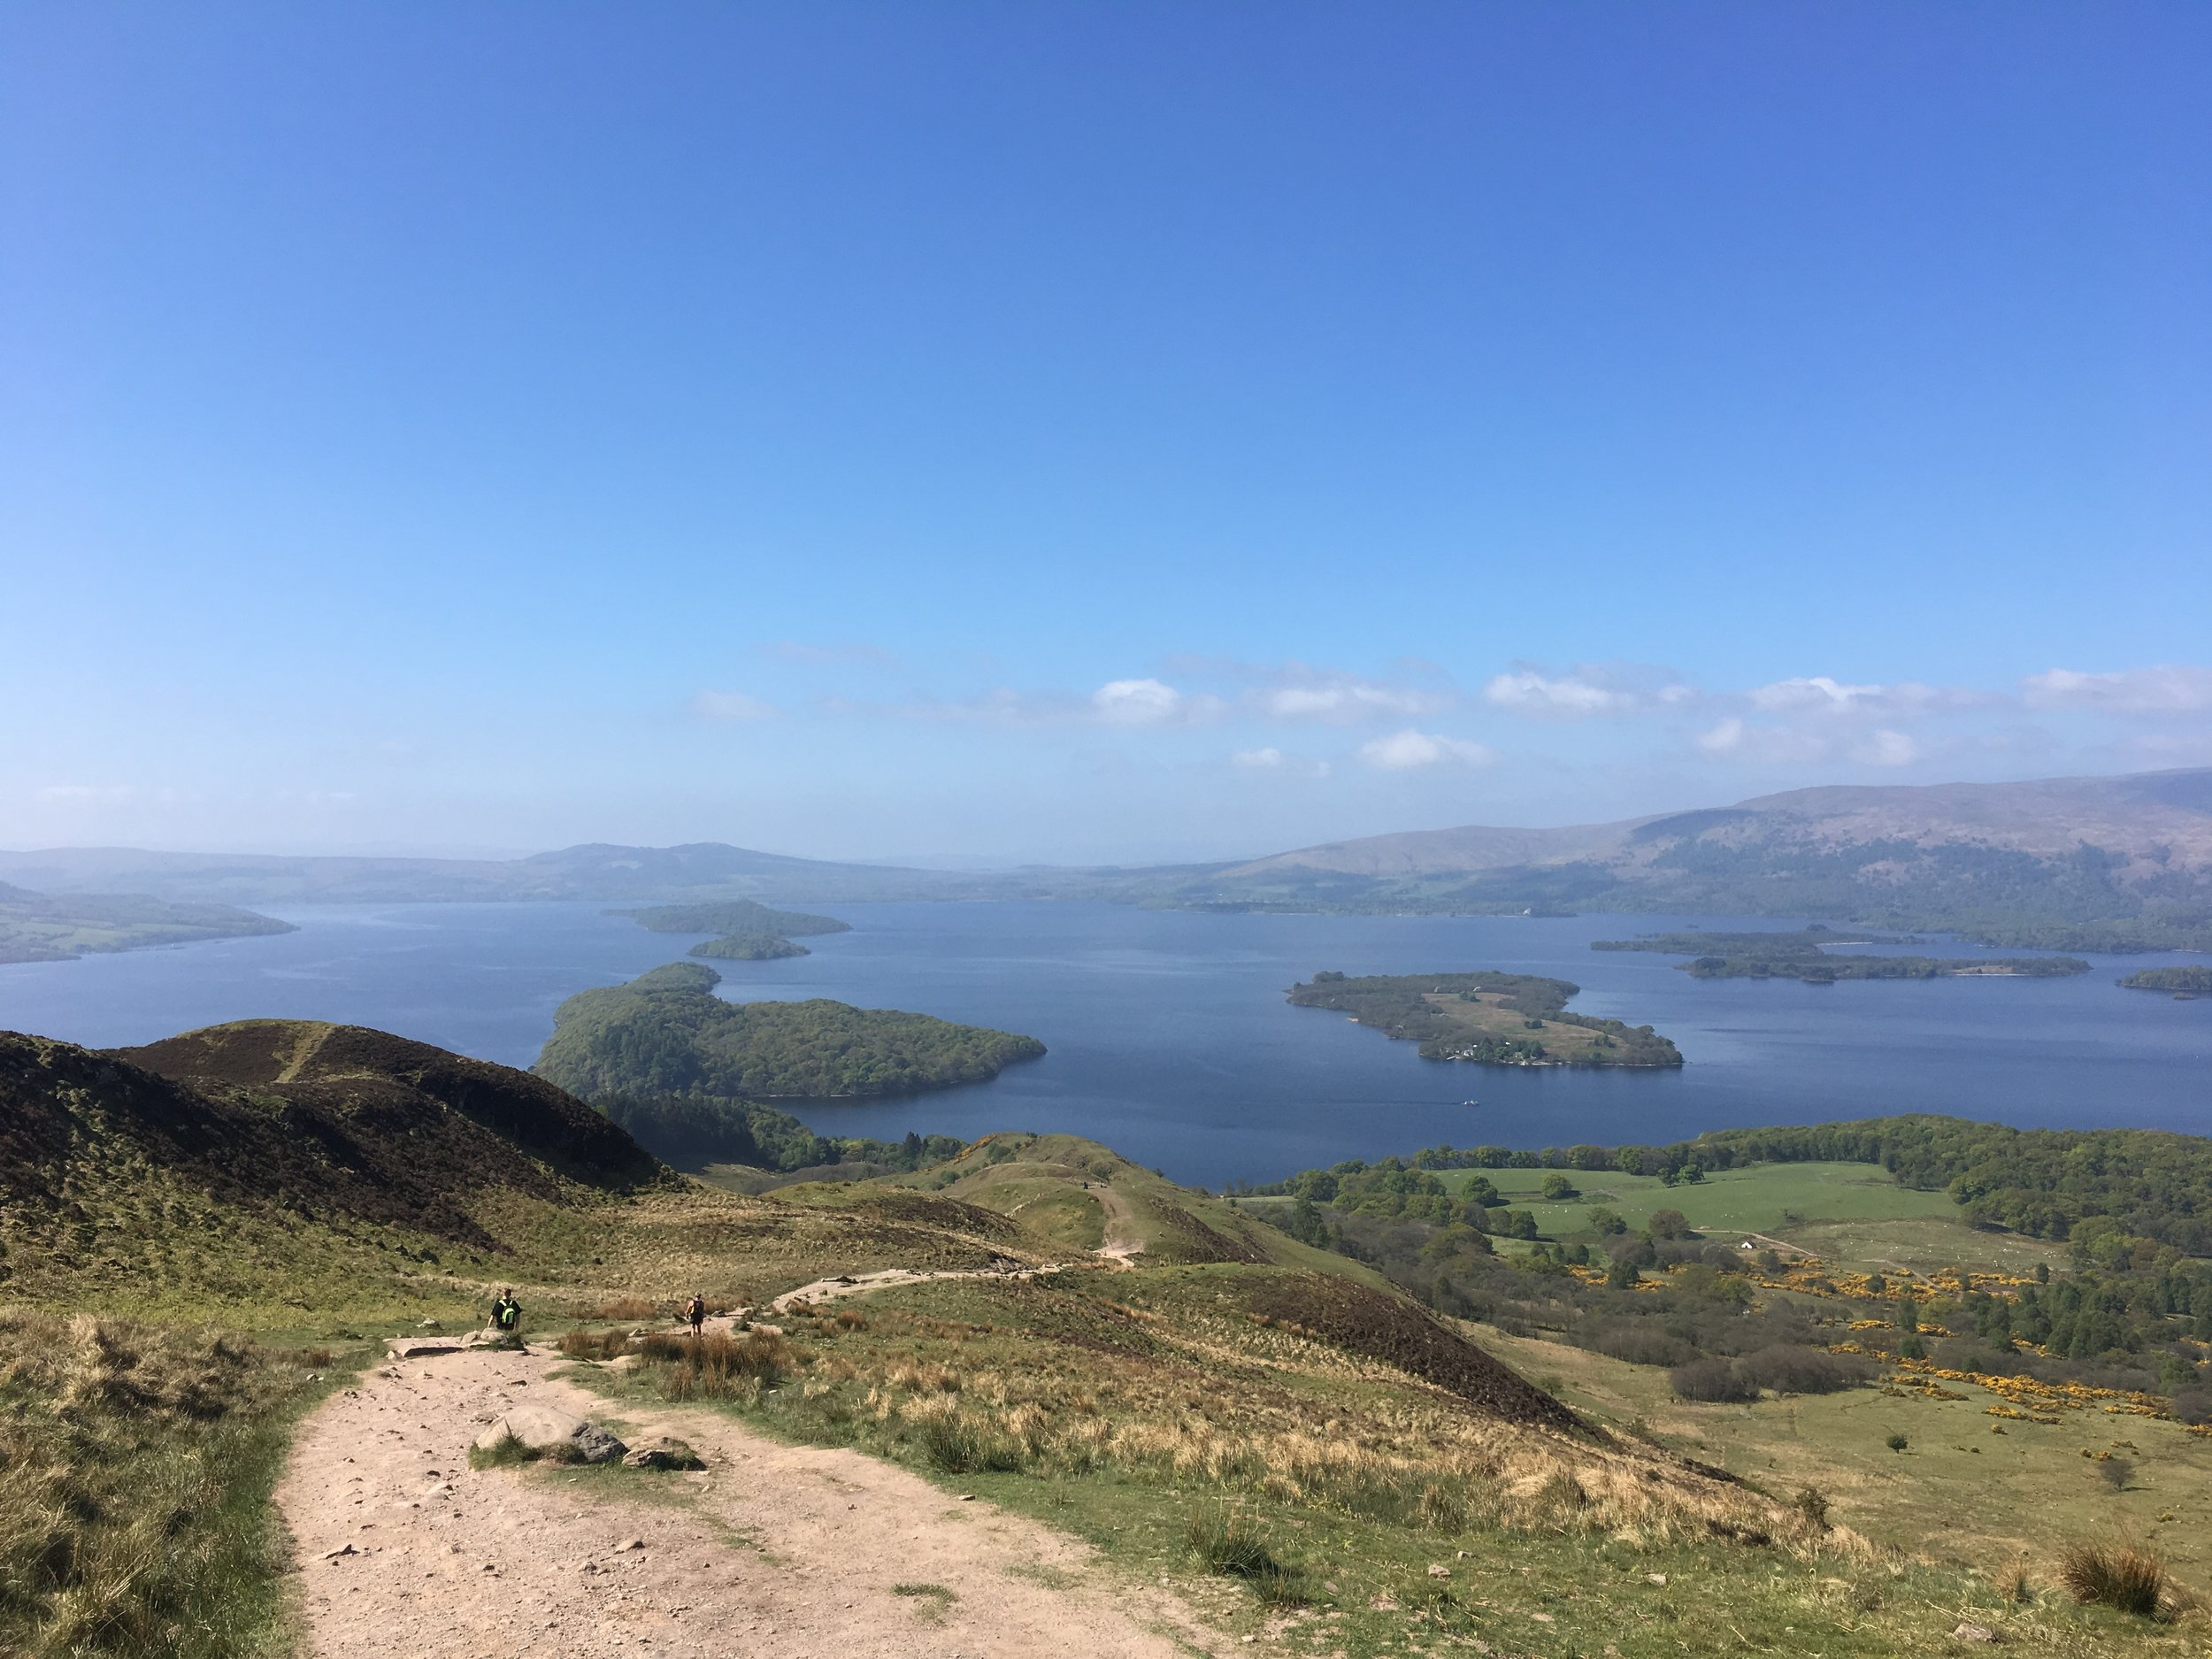 Enjoying the scenic views of Loch Lomond on the West Highland Way